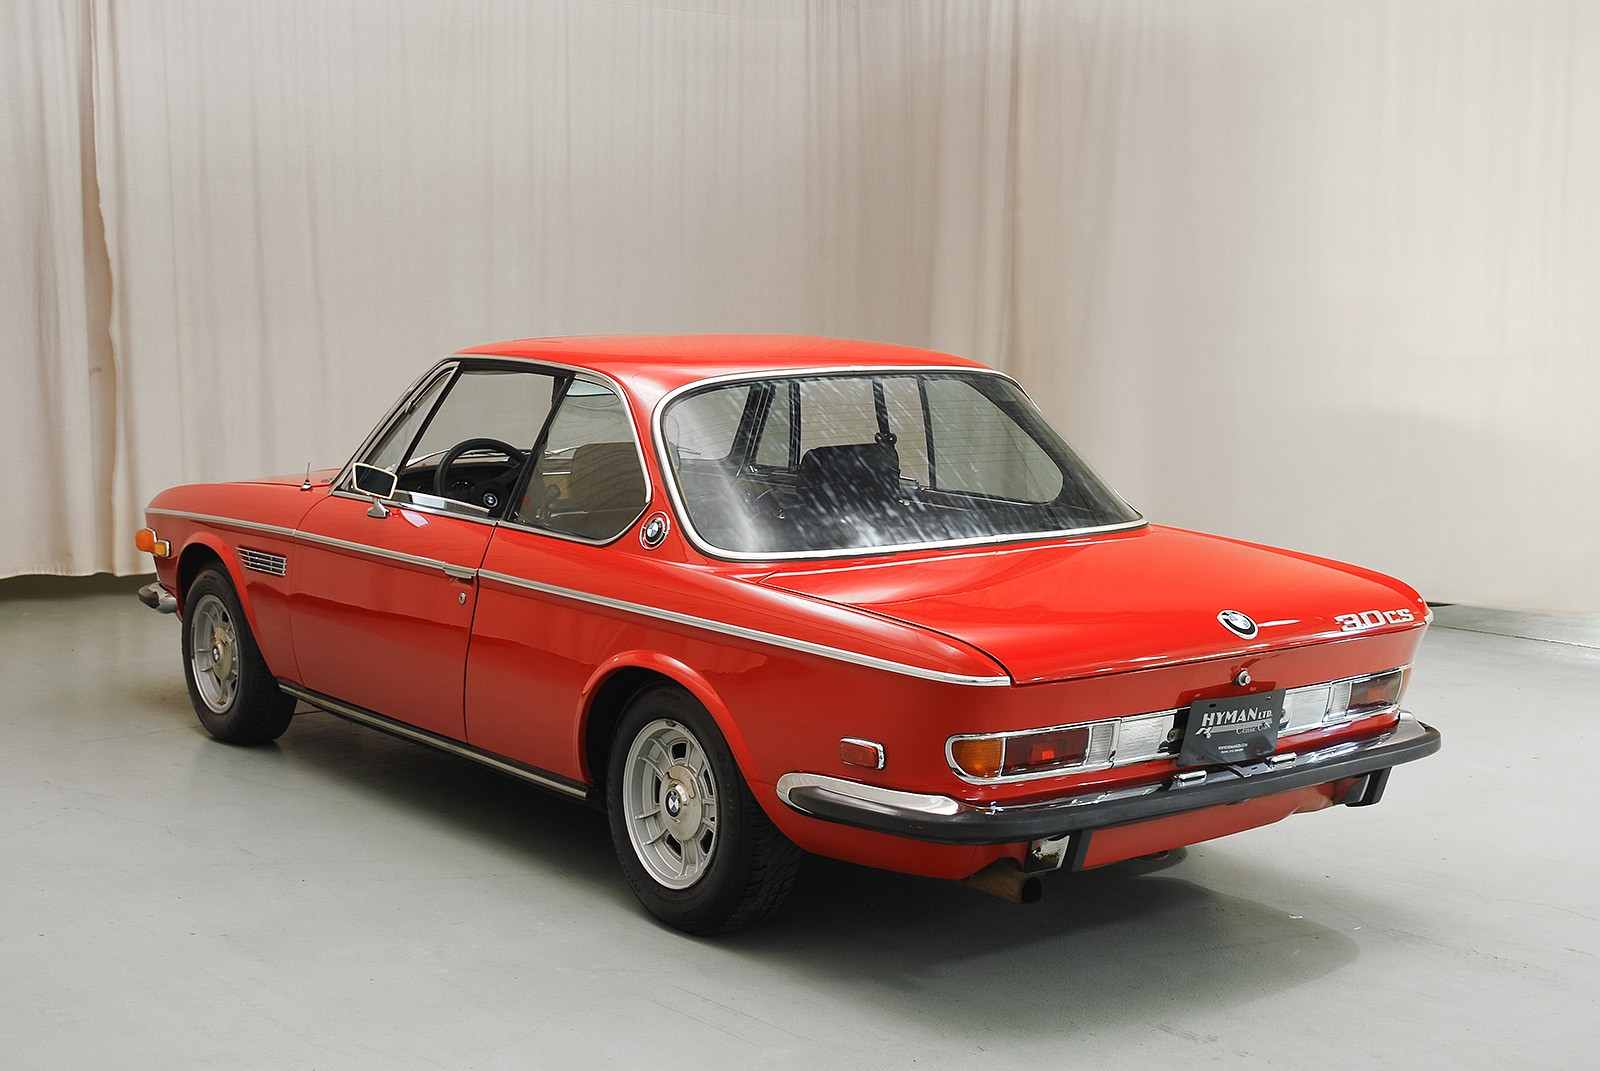 Nissan Maxima Coupe >> 1972 Collector's BMW 3.0CS Coupe for Sale in St. Louis - autoevolution